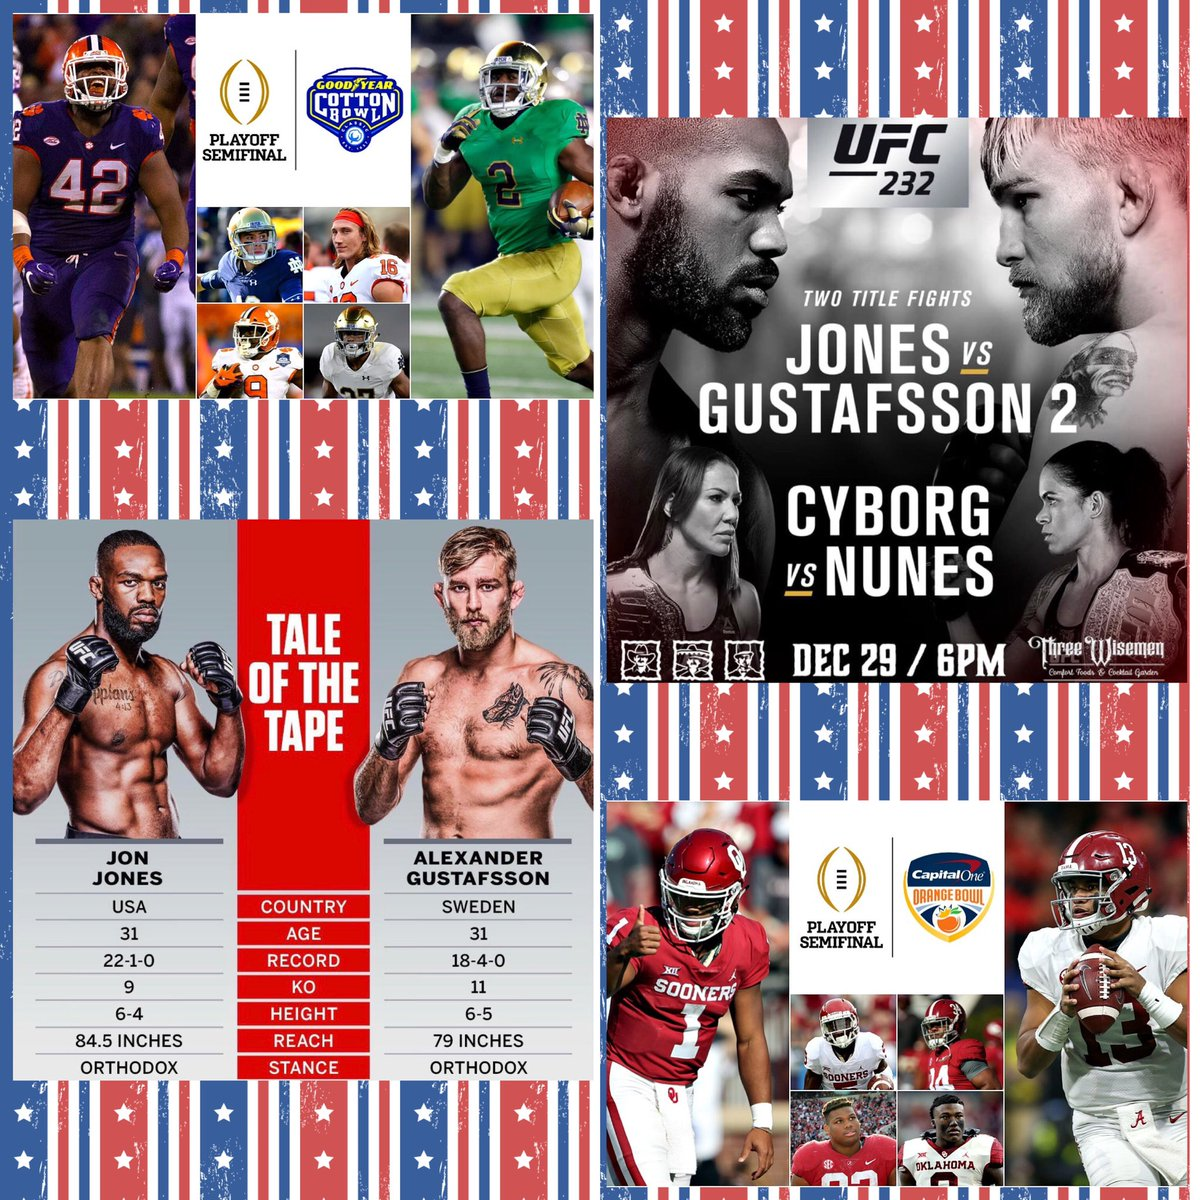 UFC 232 Jones vs Gustafsson 2 + Cyborg vs Nunes + College Football Semifinals (Clemson vs Notre Dame & Alabama vs Oklahoma) ... Many TVs for your Viewing Pleasure  ... Table Reservations Recommended Contact @GemRayMedia at 480.772.7613 (Text) ... http://www.threewisemenaz.com 📲